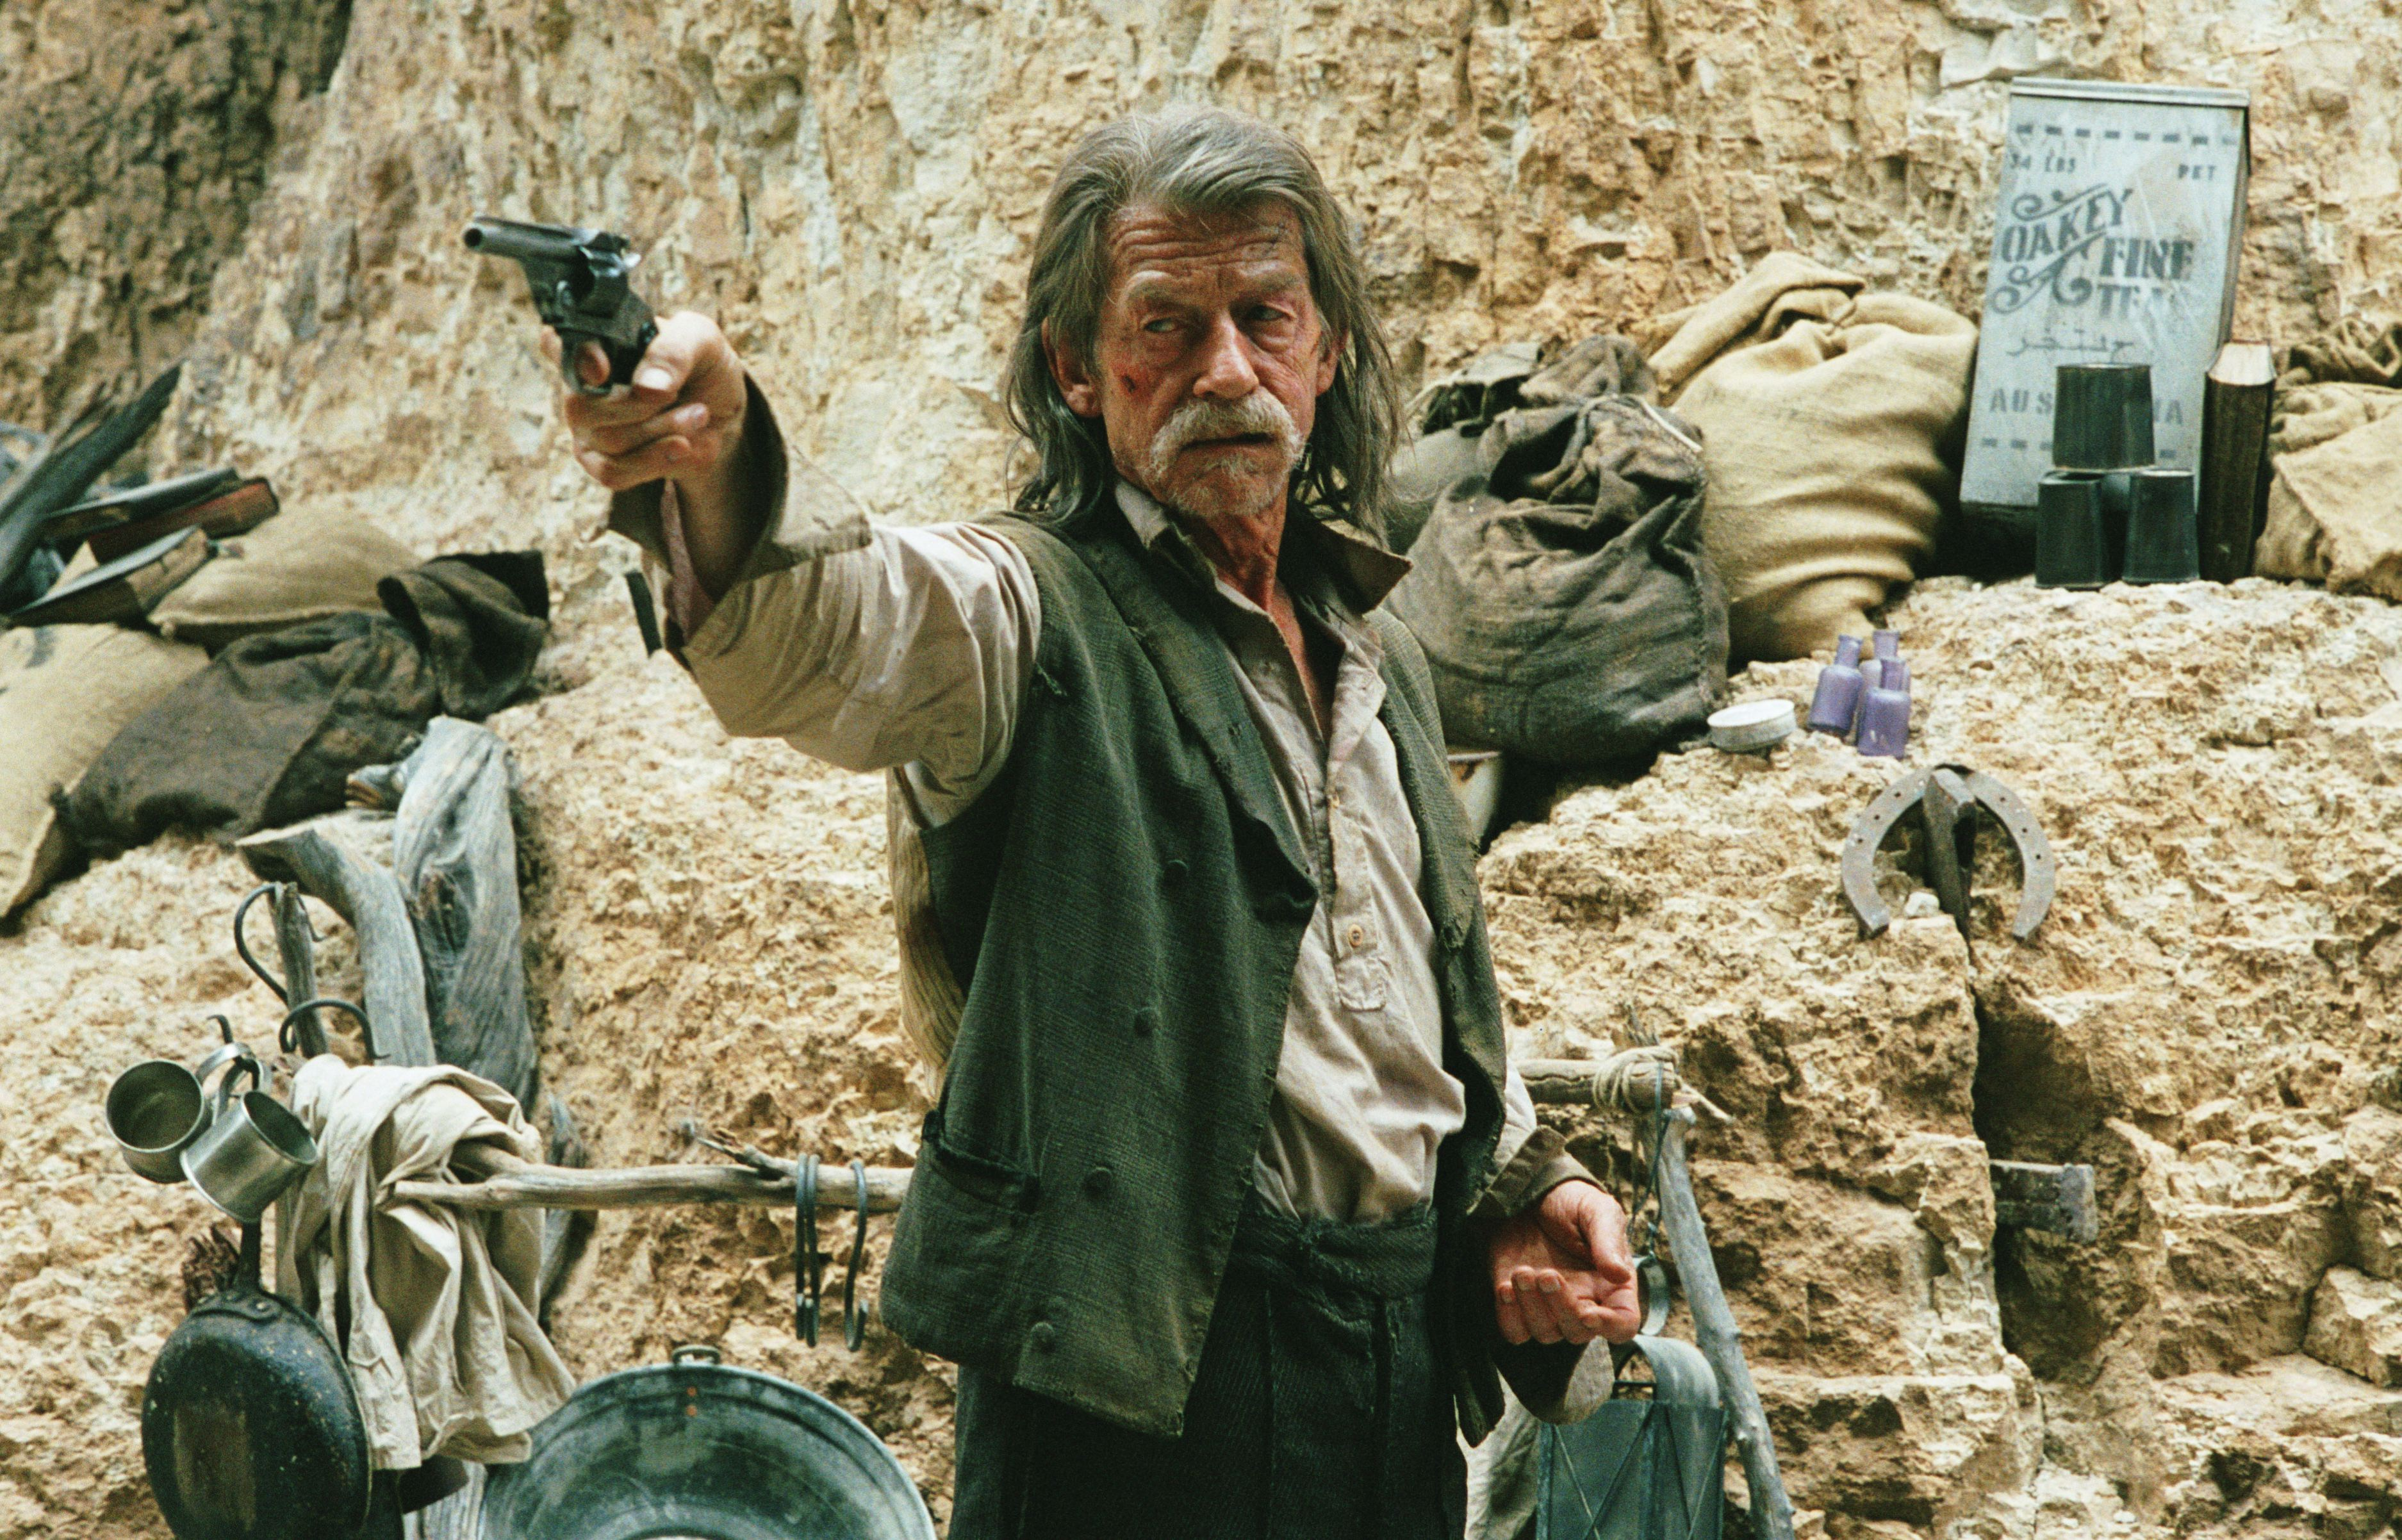 John Hurt as Jellon Lamb in John HillcoatÔÇÖs ÔÇÿThe PropositionÔÇÖ.4, photo by Kerry Brown_